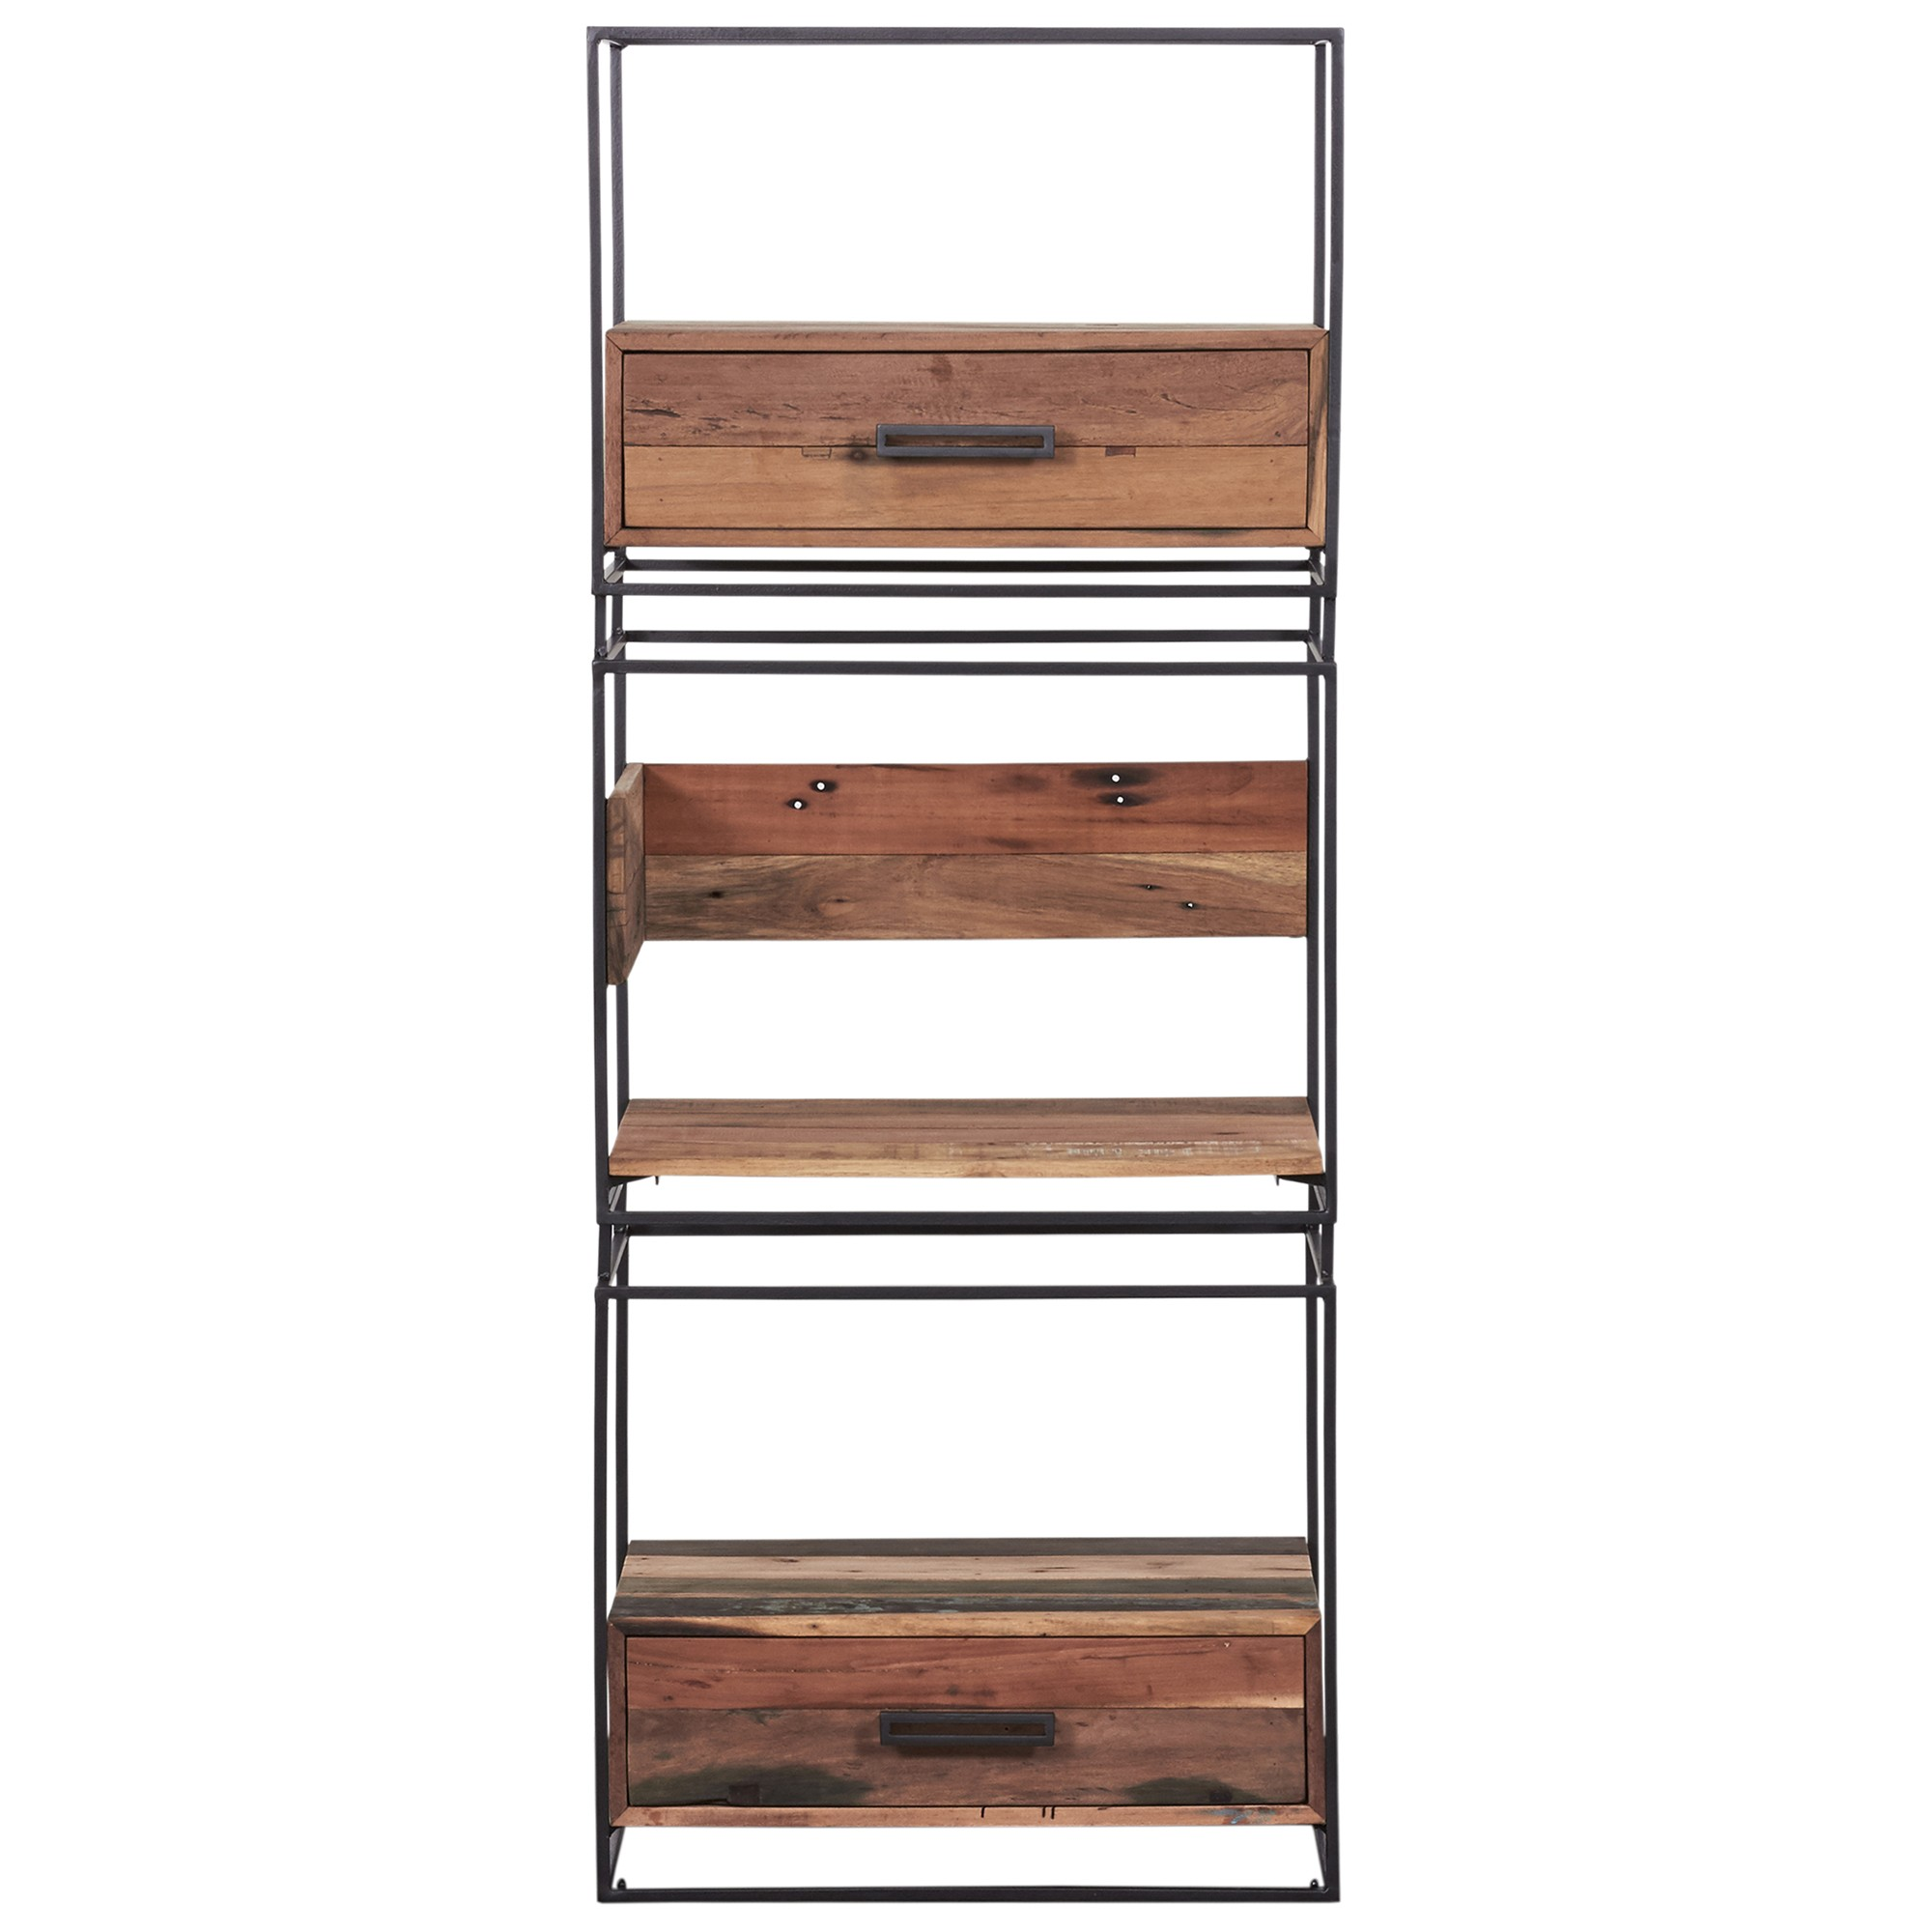 Nako Commercial Grade Reclaimed Timber & Iron Display Shelf with Drawers